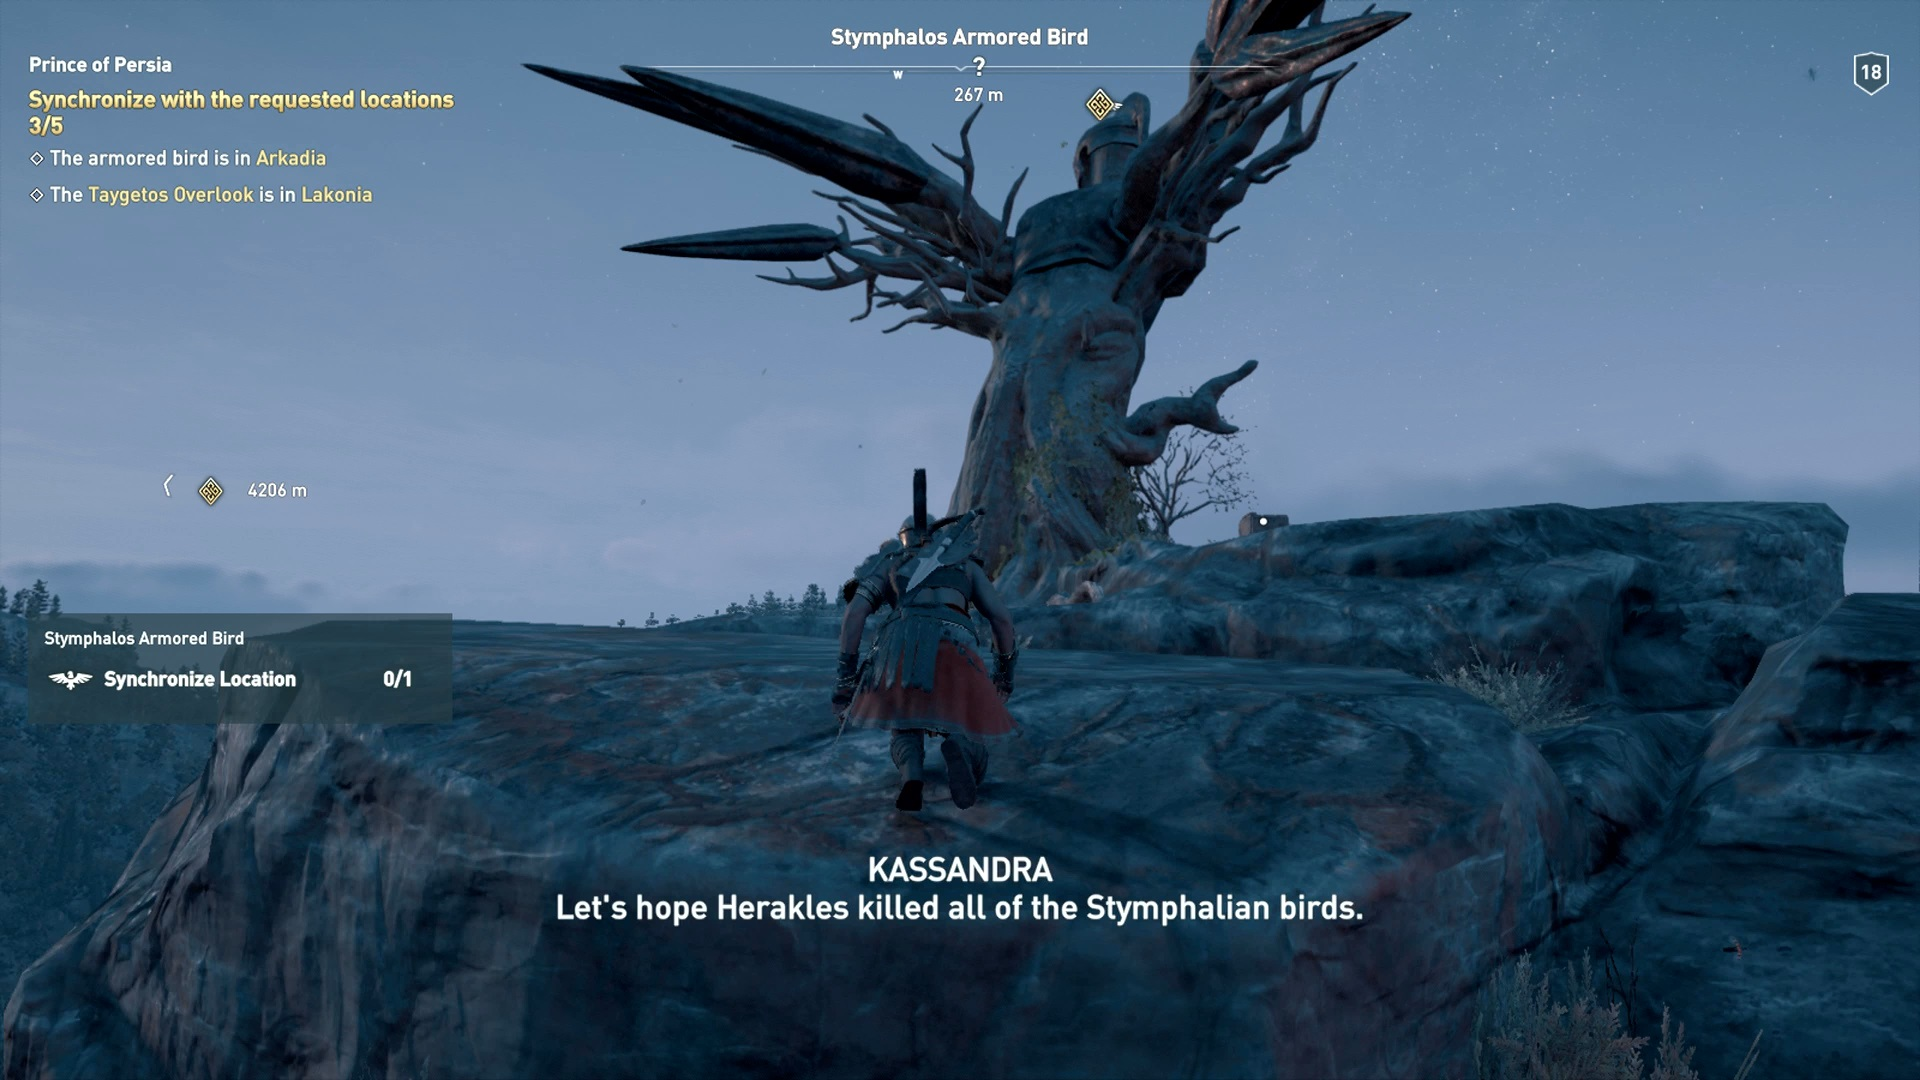 Kassandra looking at the Stymphalos Armored Bird